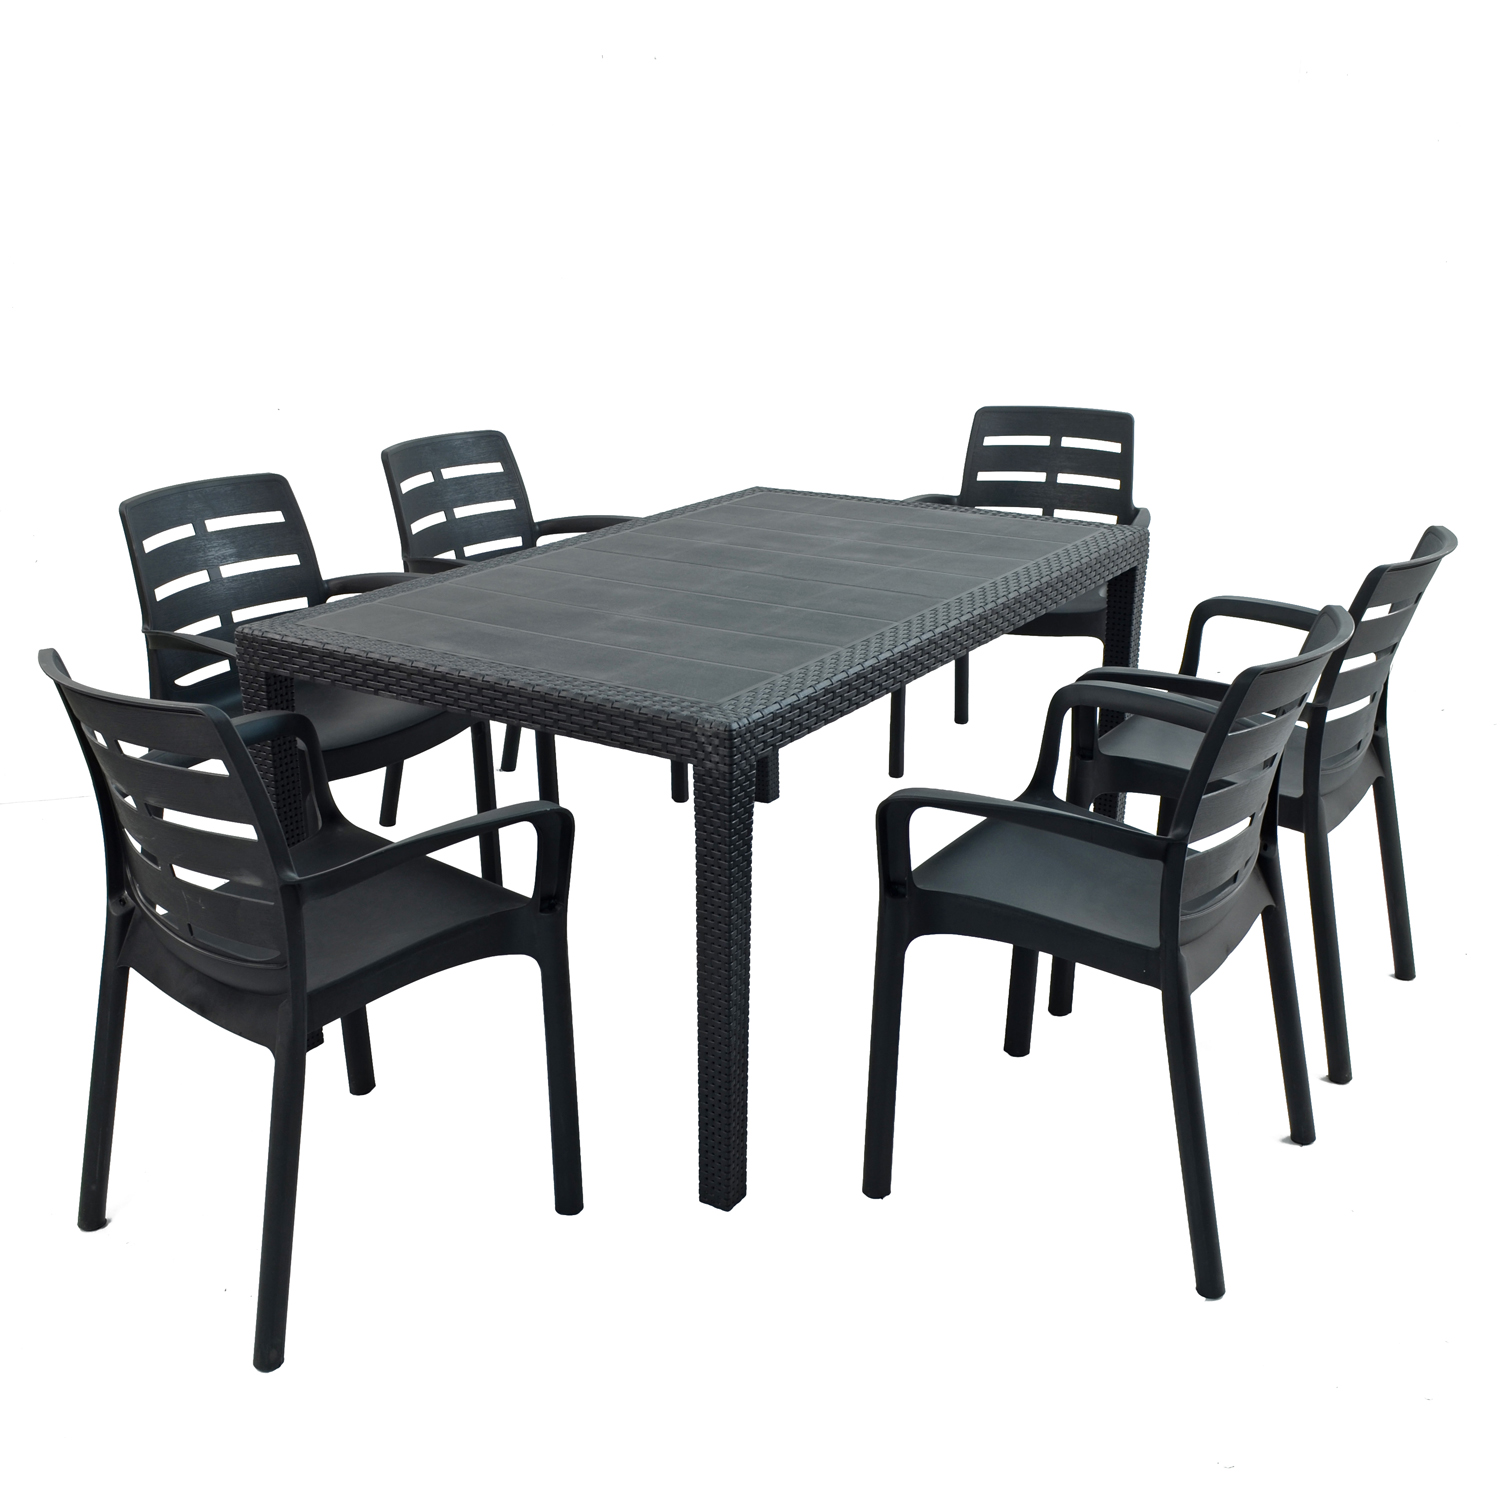 SALERNO DINING TABLE WITH 6 SIENA CHAIRS SET ANTHRACITE